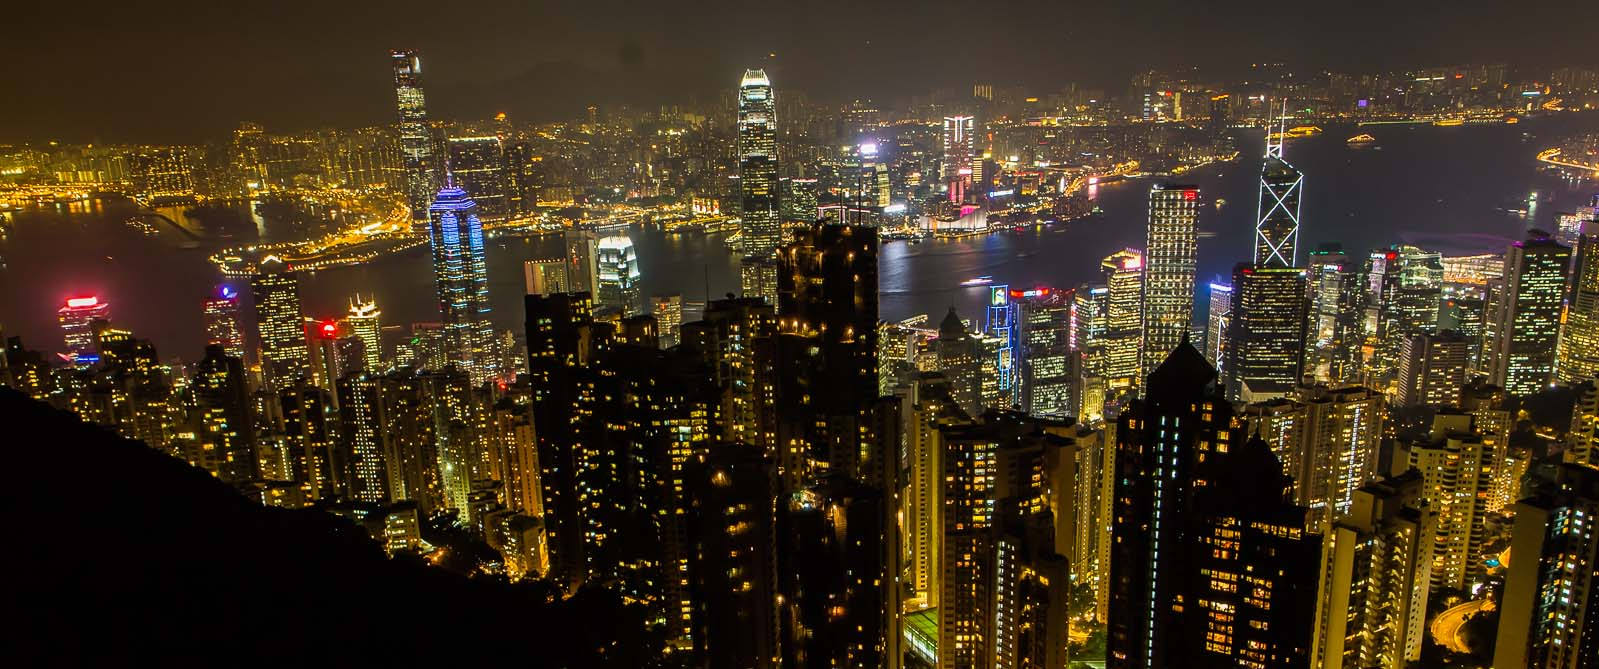 The sky terrace 428 bringing you the scenic view of hong kong for Terrace night